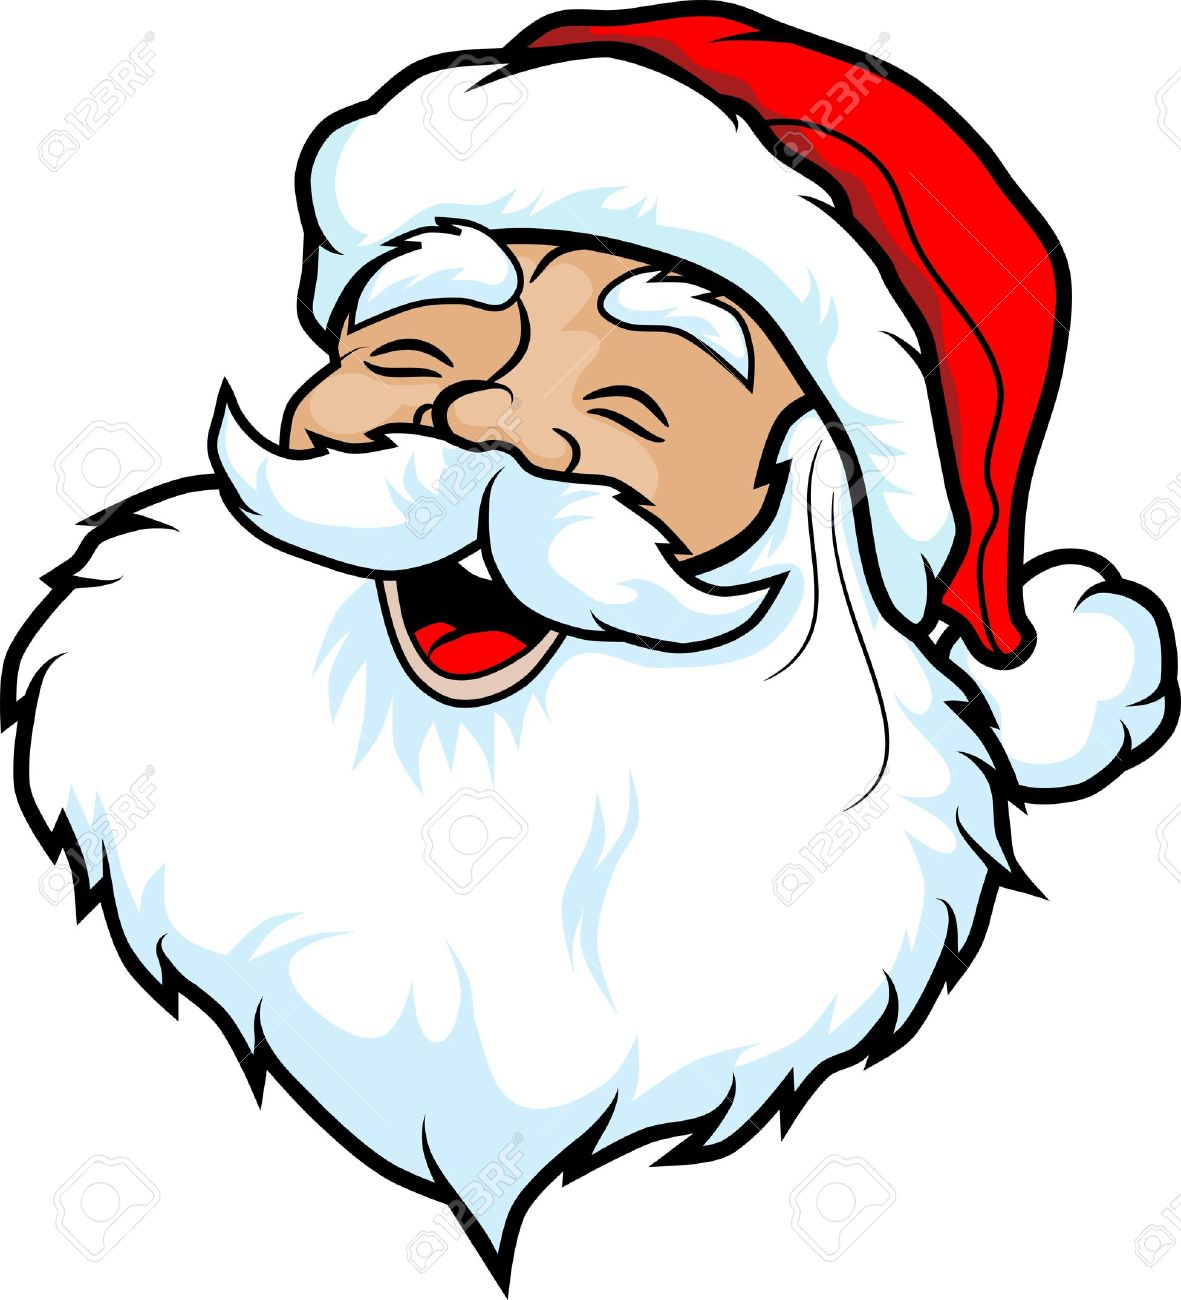 Illustration Of The Face Of Santa Claus Cartoon Style Royalty Free